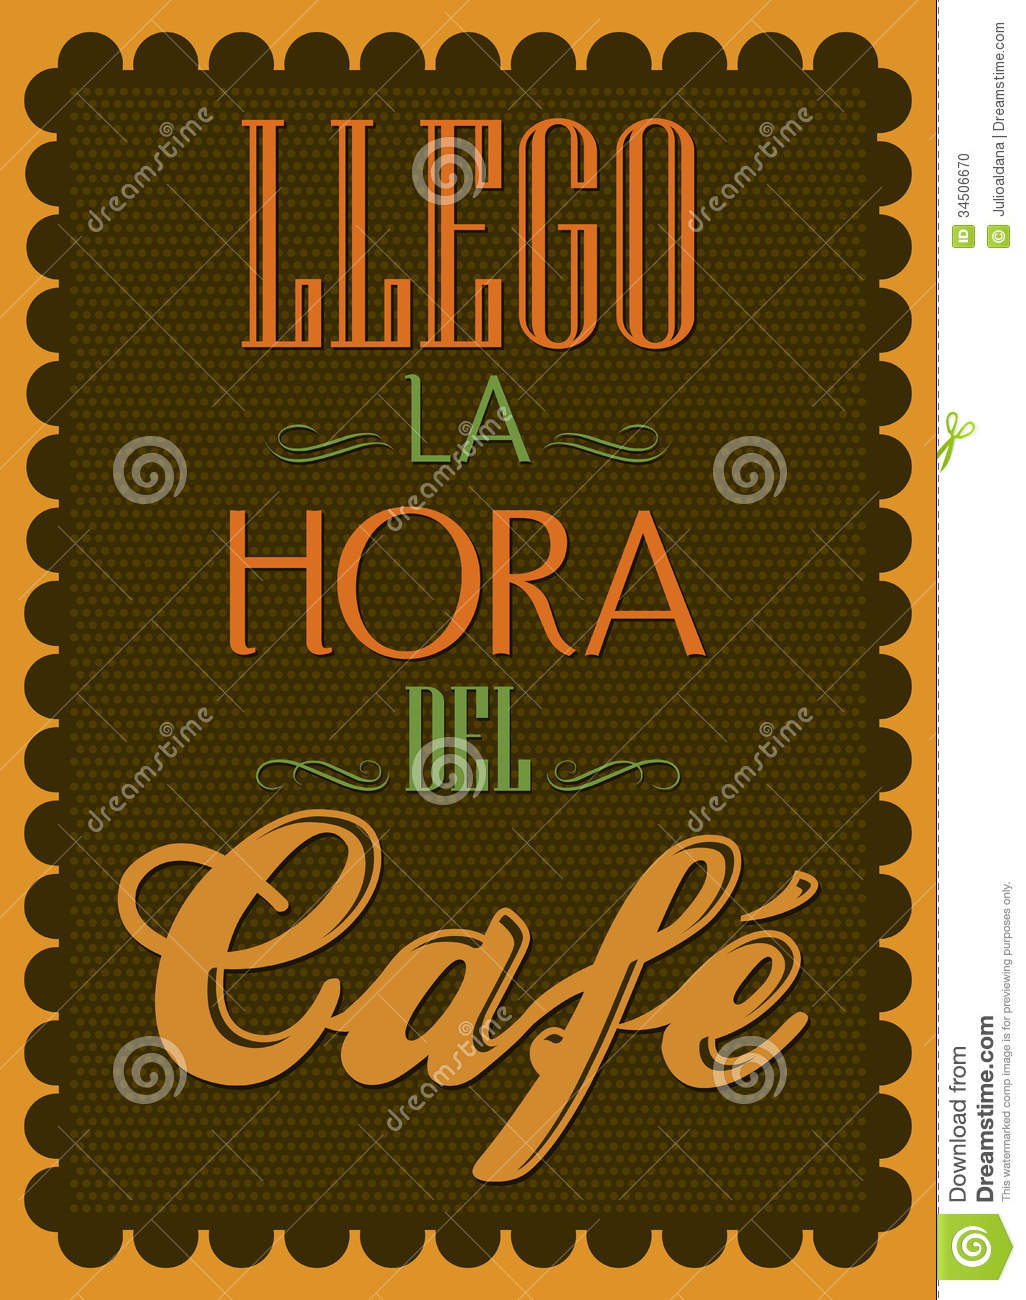 Llego La Hora Del Cafe It S Coffee Time Spanish Stock